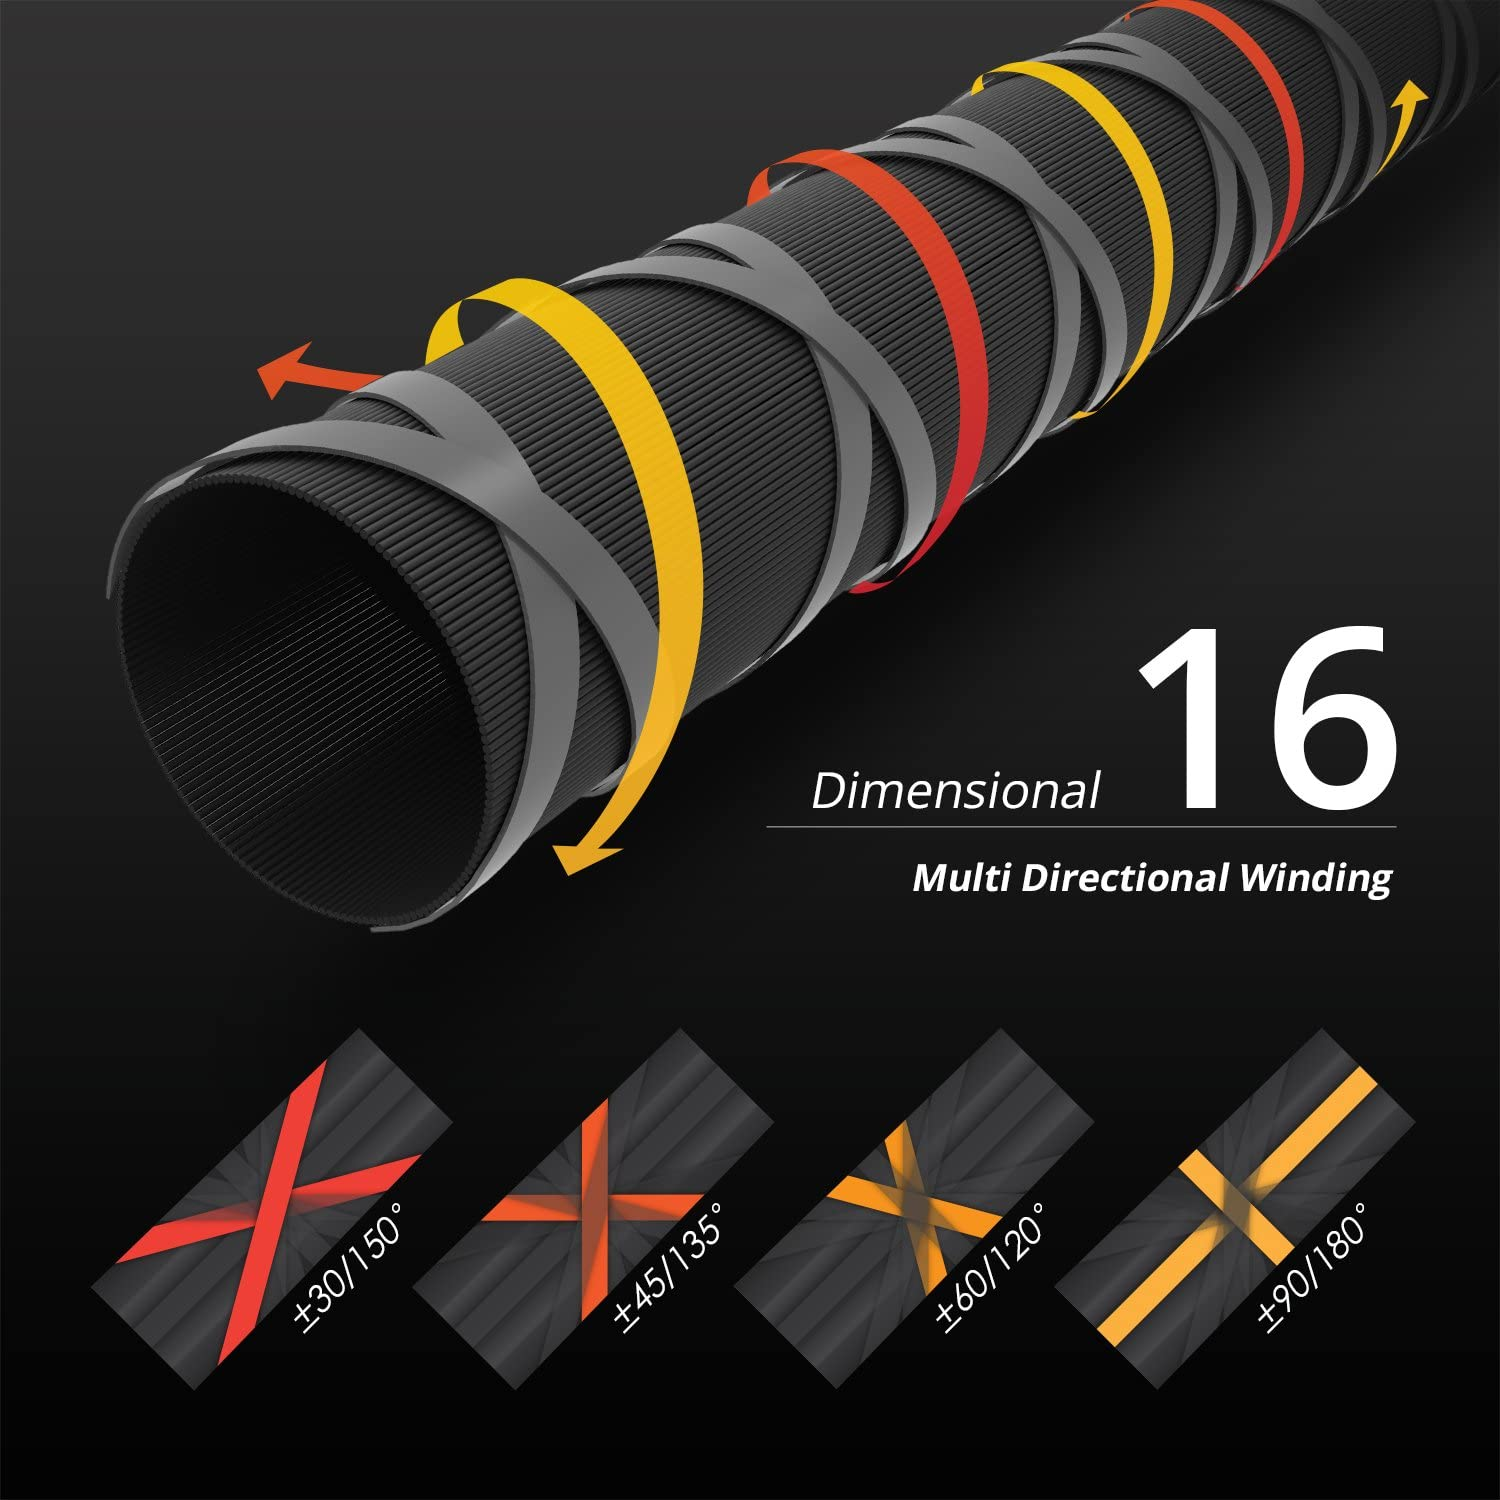 Dimensional 16 High Modulus 1 Pcs Carbon Blanks Spinning Rod /& Casting Rod Models in 11 Technique Specific Lengths /& Actions KastKing Speed Demon Bass Fishing Rod Series Fuji Guides /& Reel Seats